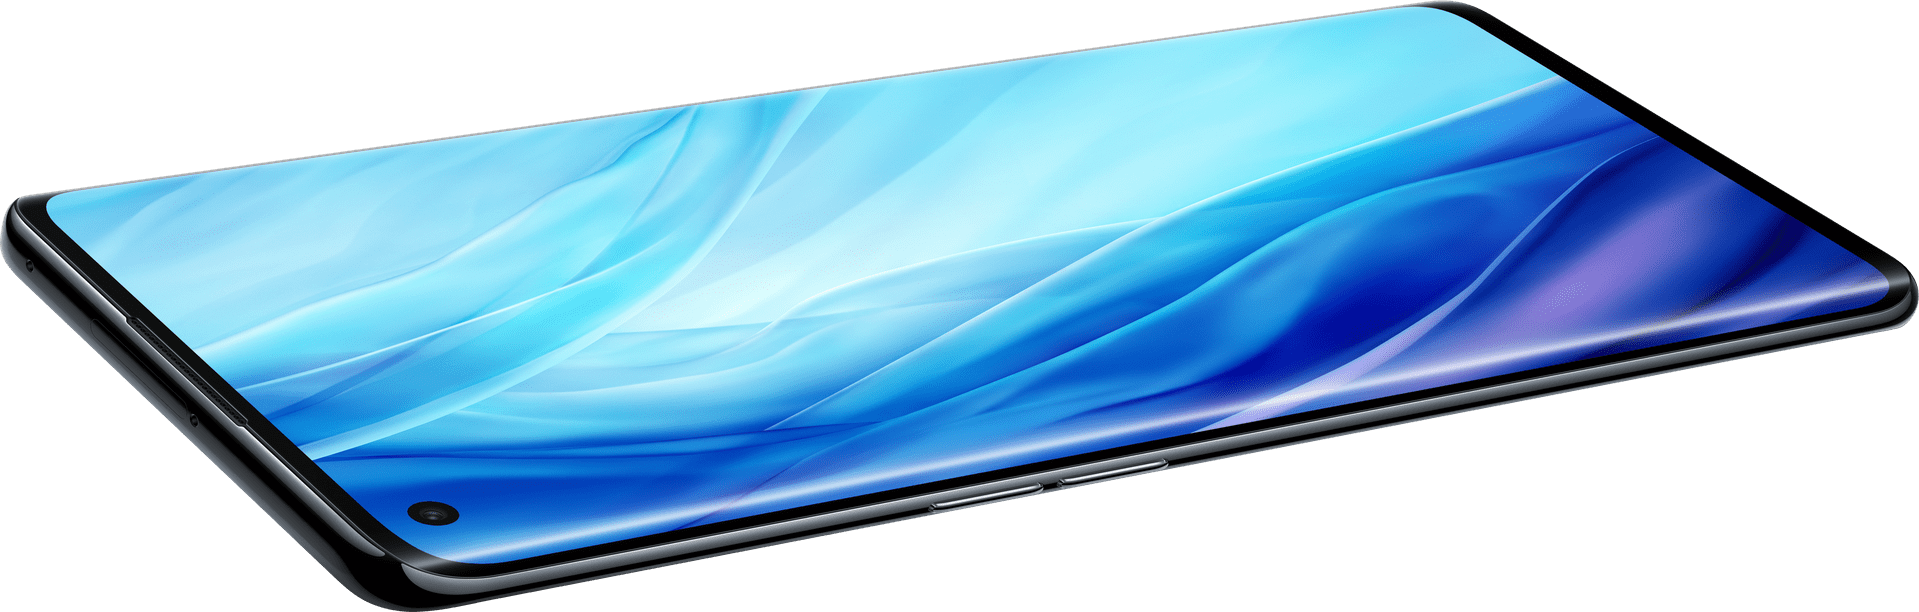 Oppo Launched its Mid Range Smartphone in India. Oppo Reno 4 Pro 5G, Price, Specifications